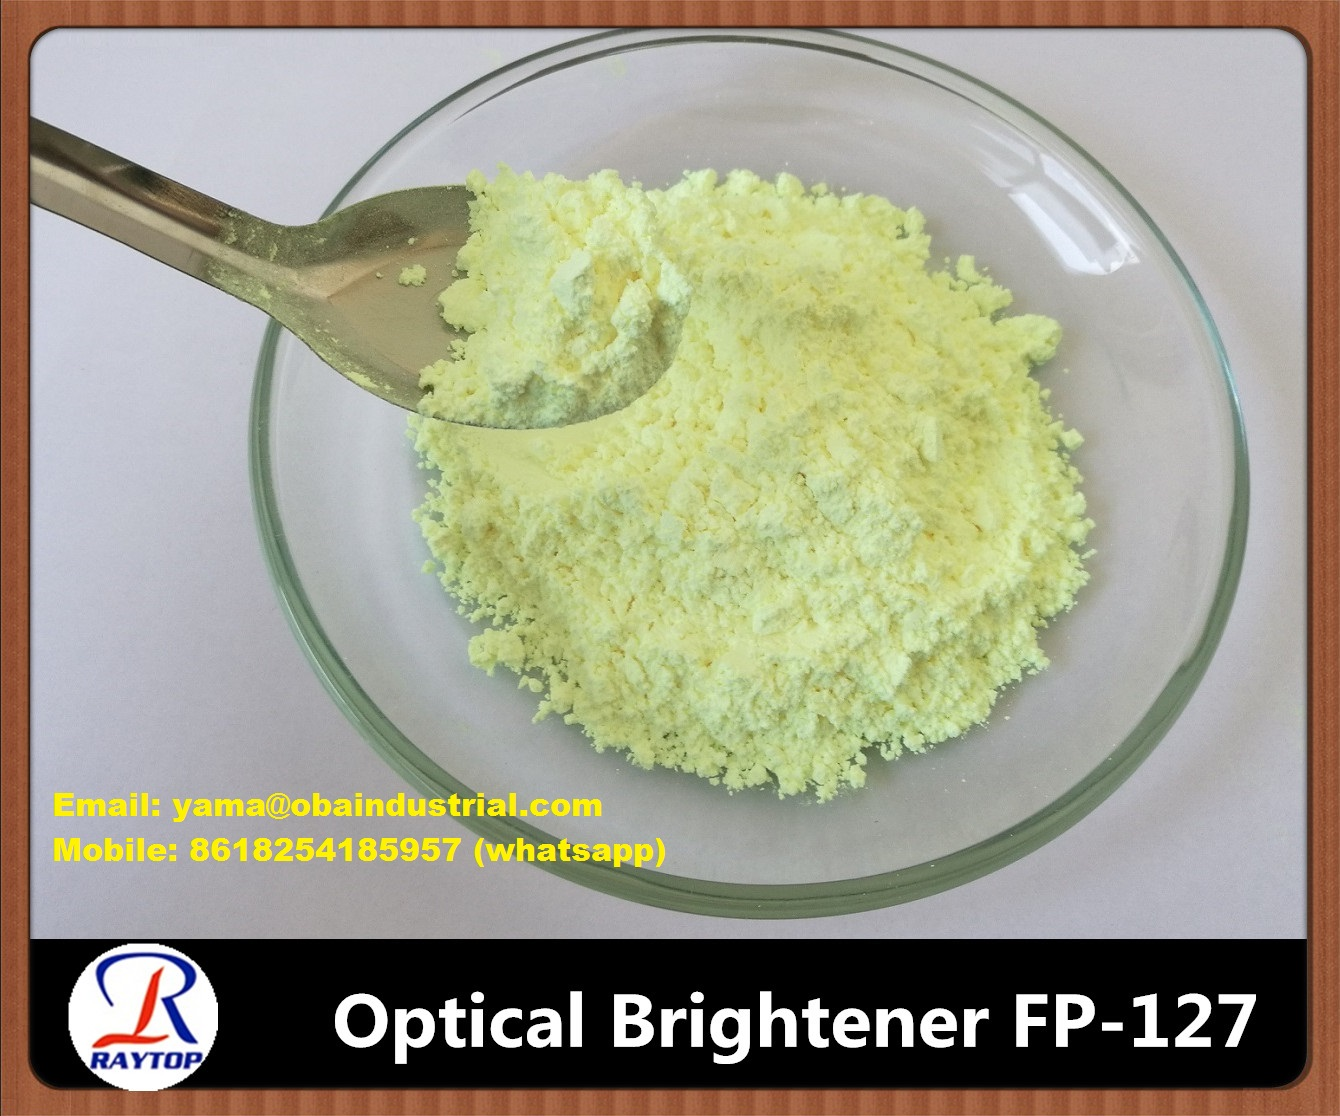 Optical Brightener for Plastics and Rubber FP-127 378